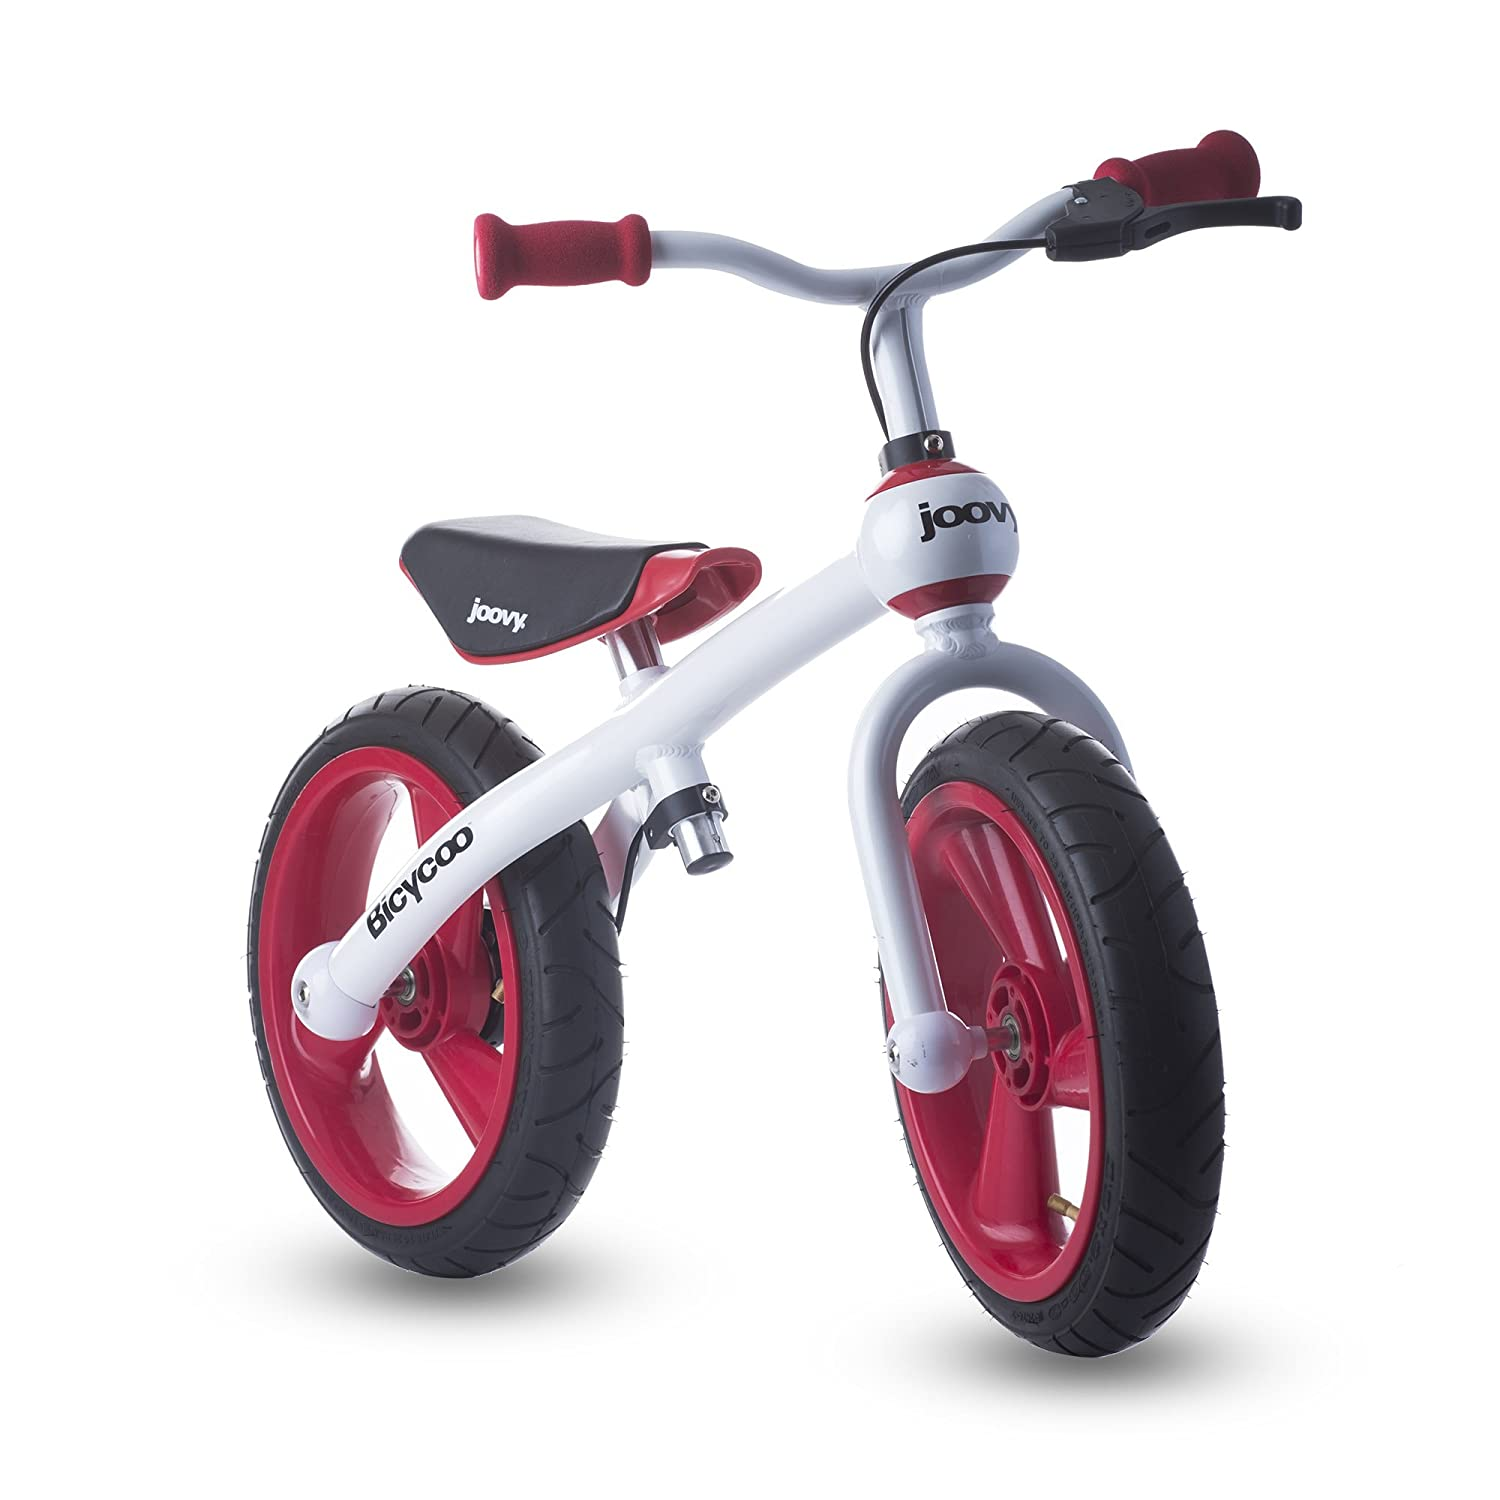 Joovy 151 Bicycoo Balance Bike, Red ISSI Inc